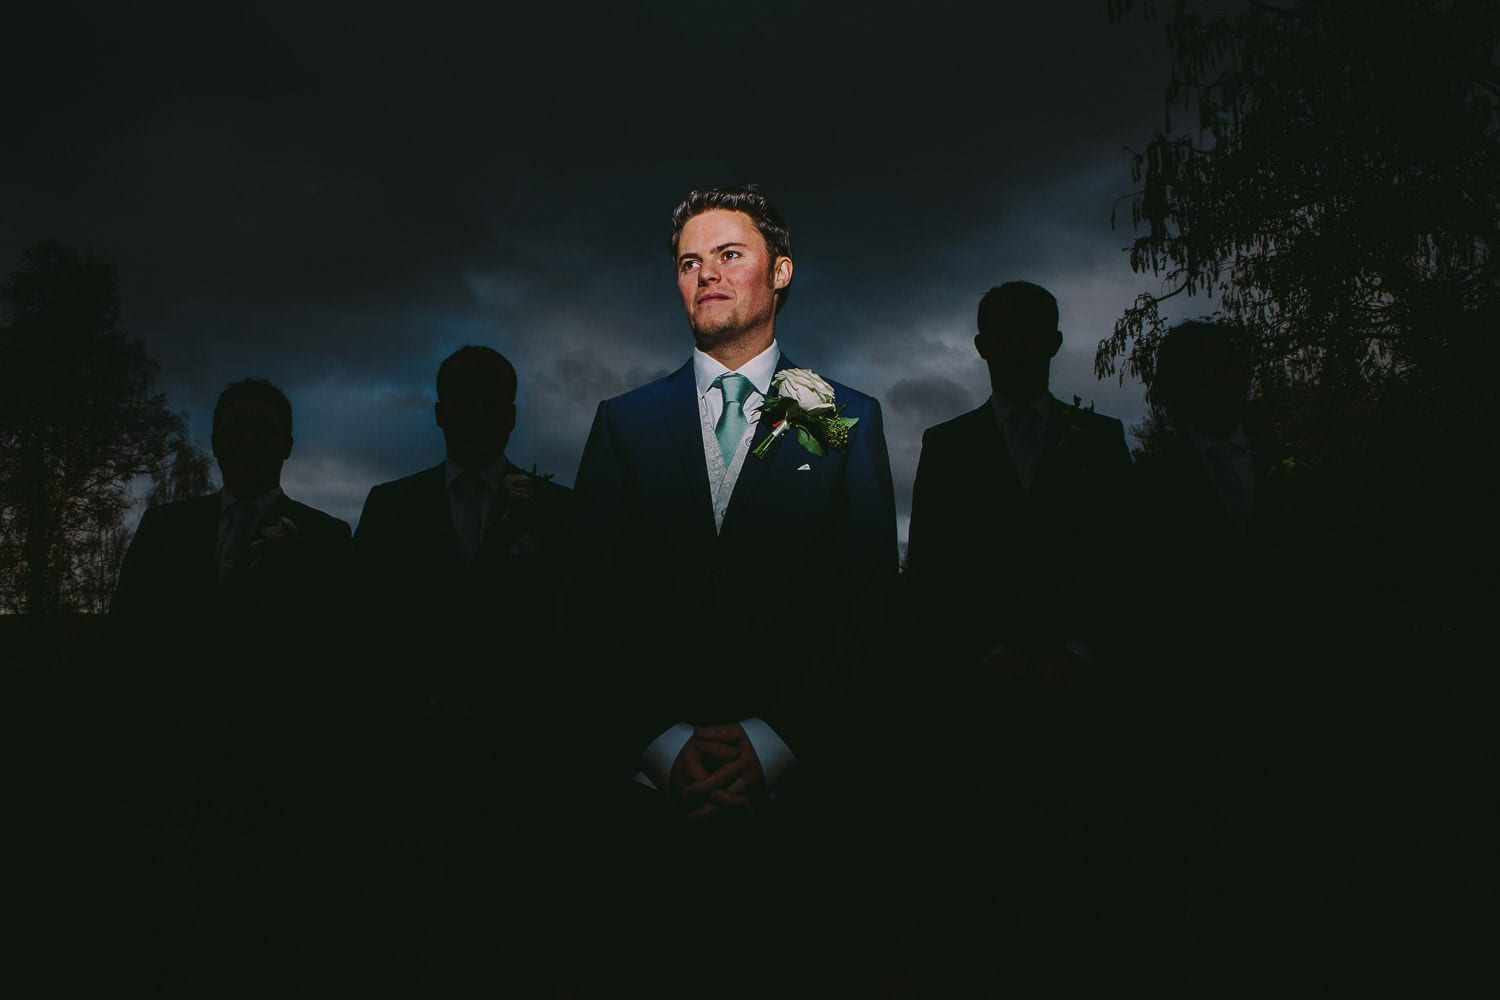 The groom stands in front of the silhouettes of his groomsmen